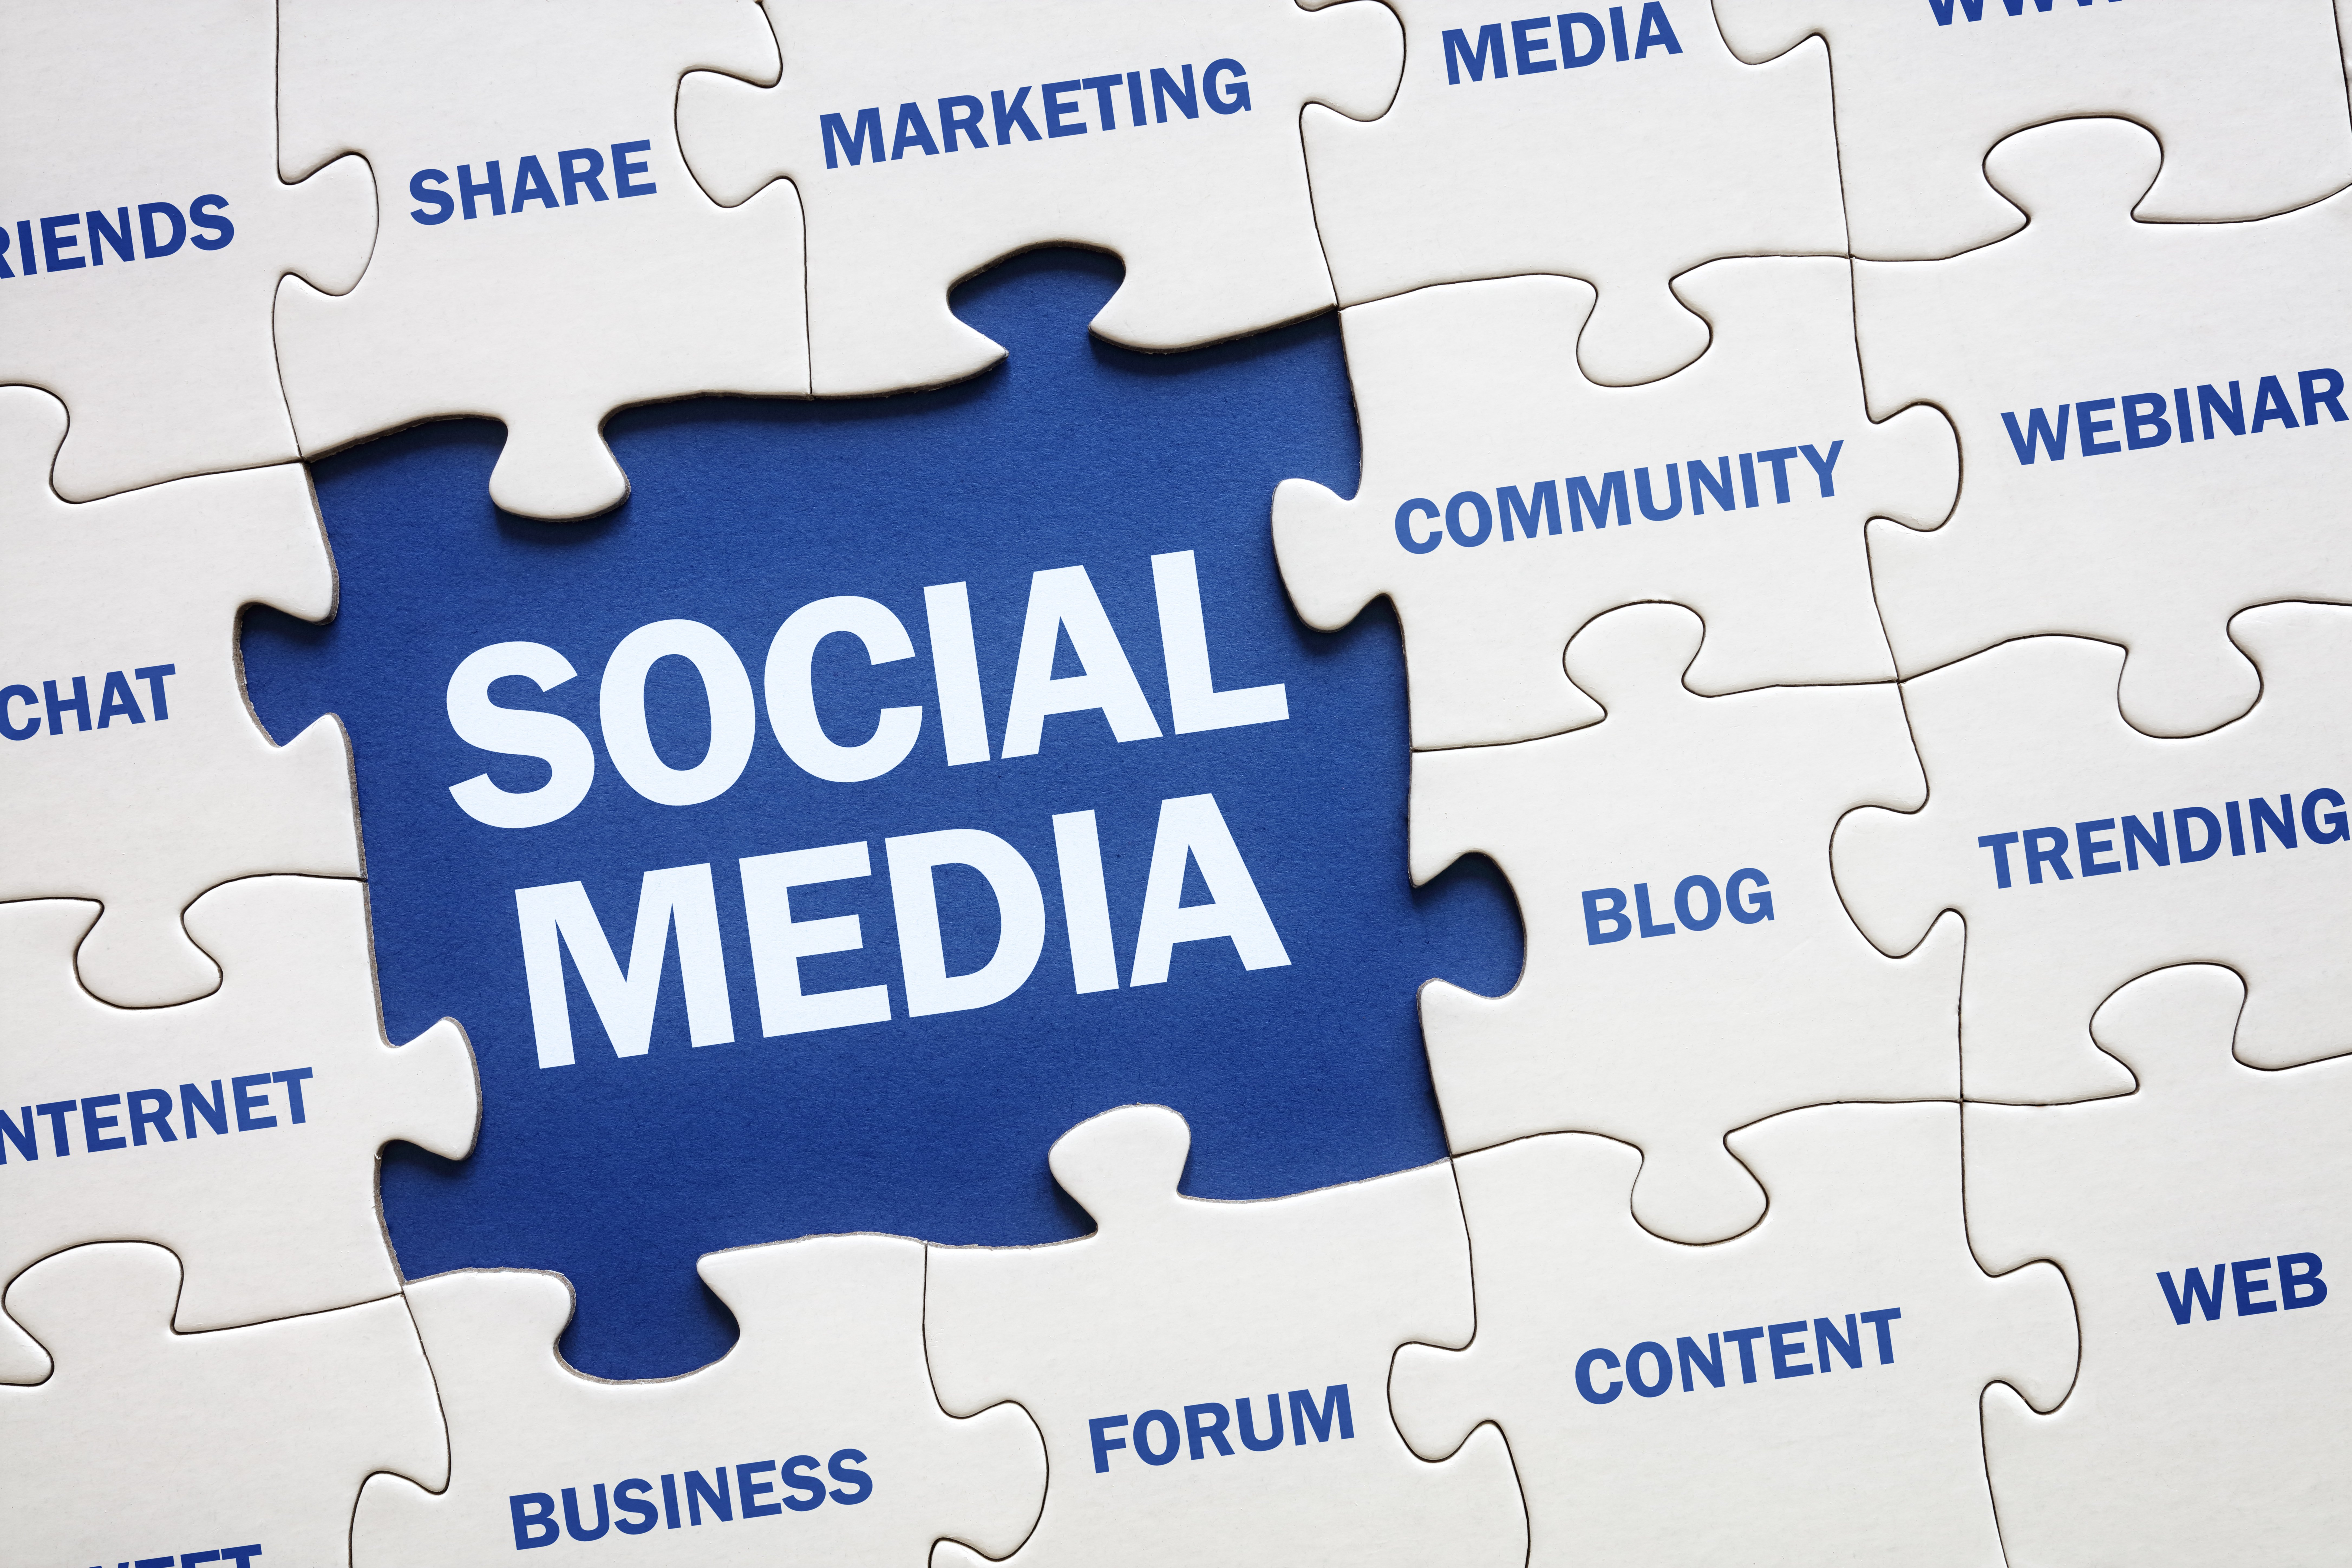 Social Media Marketing for Mortgage Lenders: The Top 5 Practices to Successful Social Media Marketing